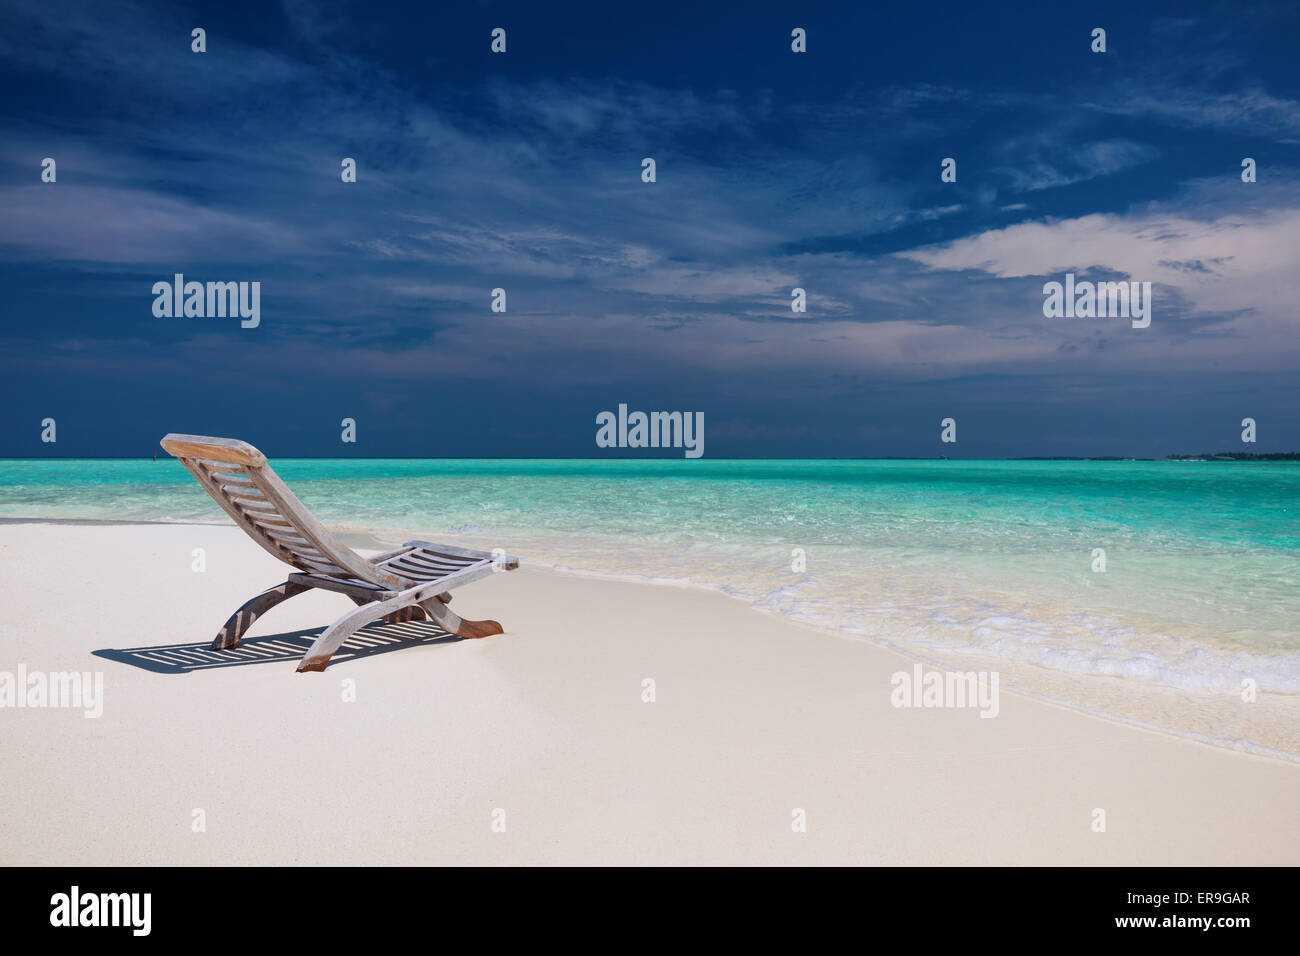 Beach view of amazing water in Maldives - empty chair on sand - Stock Image